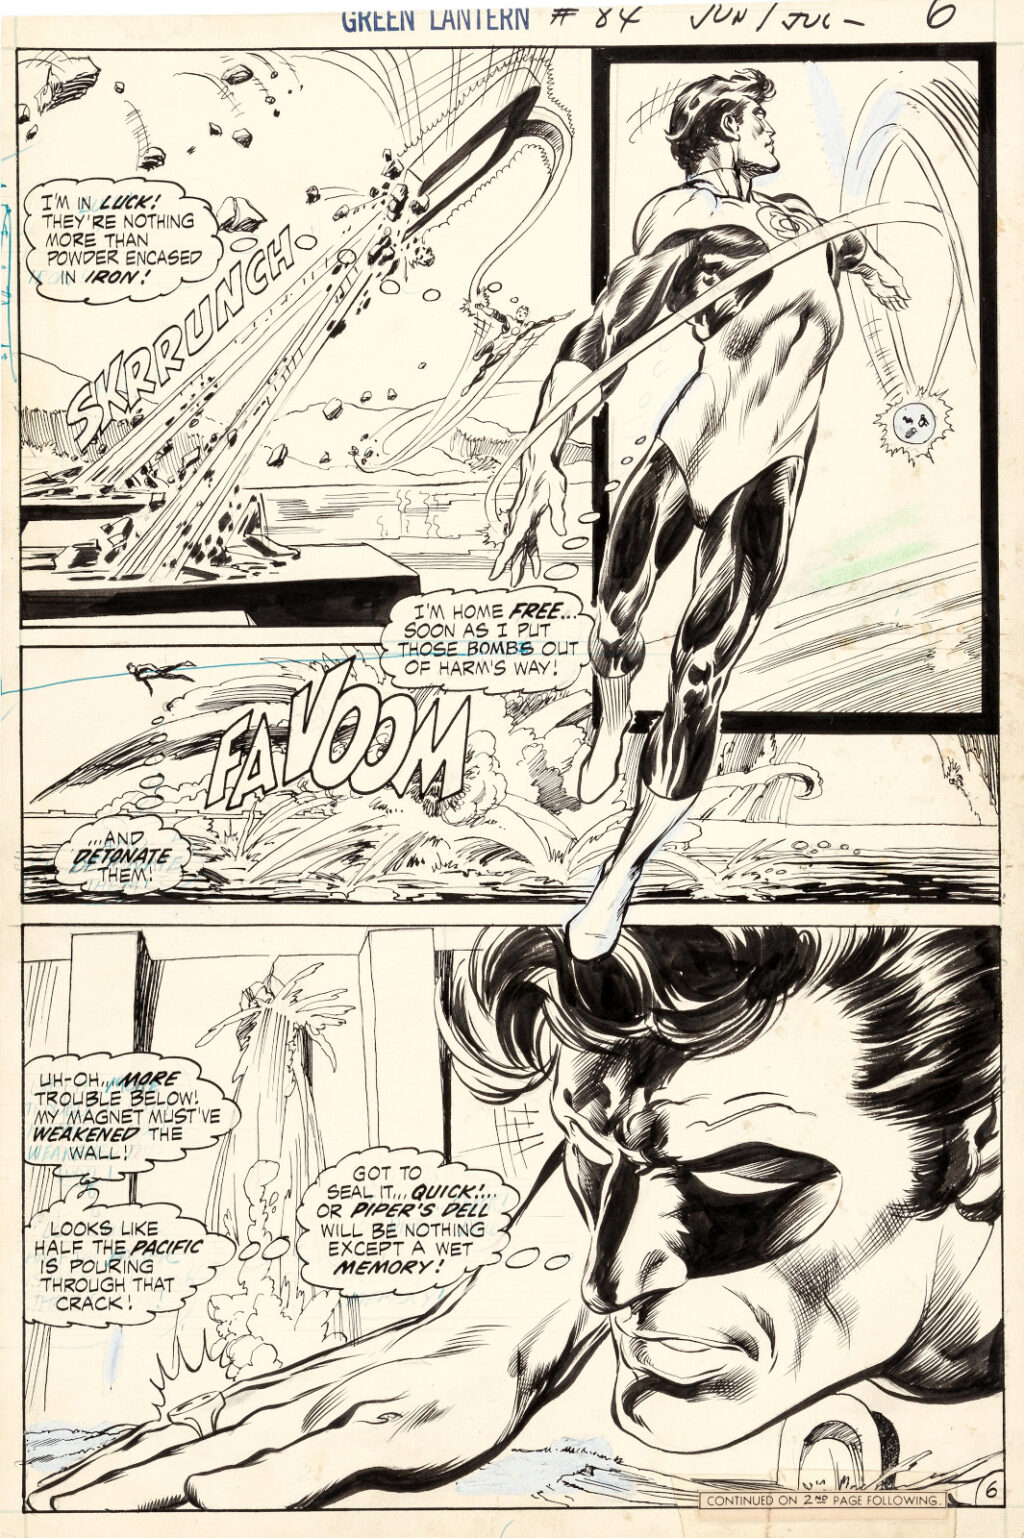 Green Lantern issue 84 page 6 by Neal Adams and Bernie Wrightson